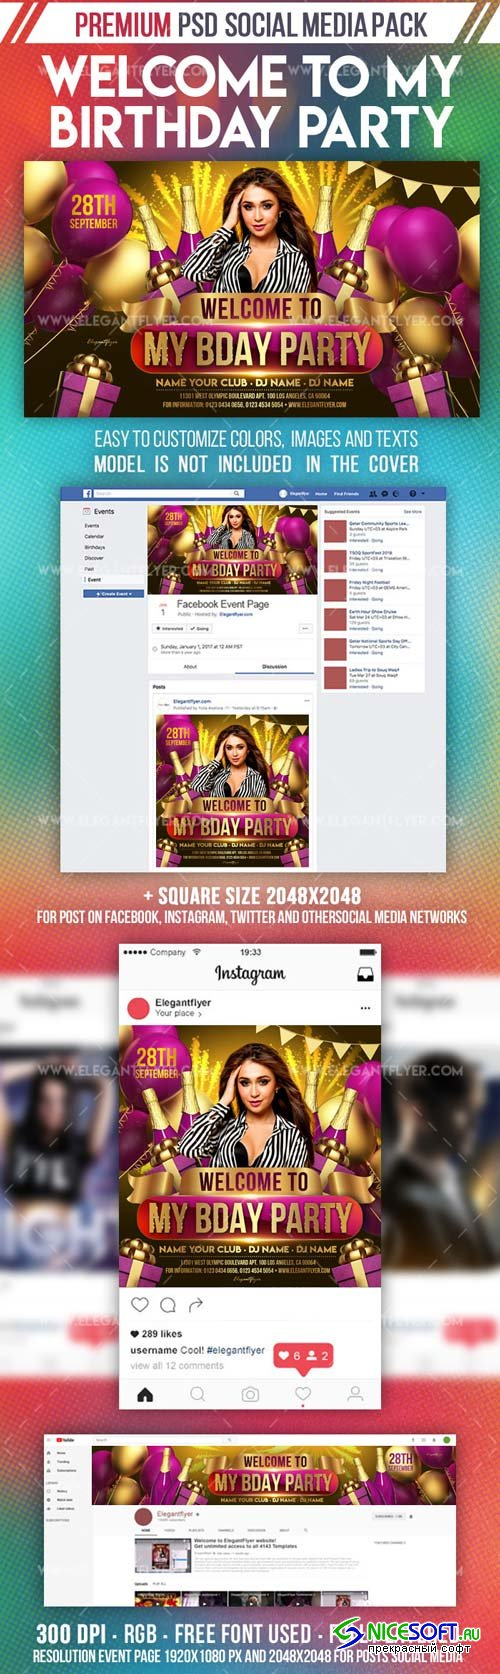 Welcome to My Birthday Party V1 2019 Facebook Event + Instagram Template + YouTube Channel Banner